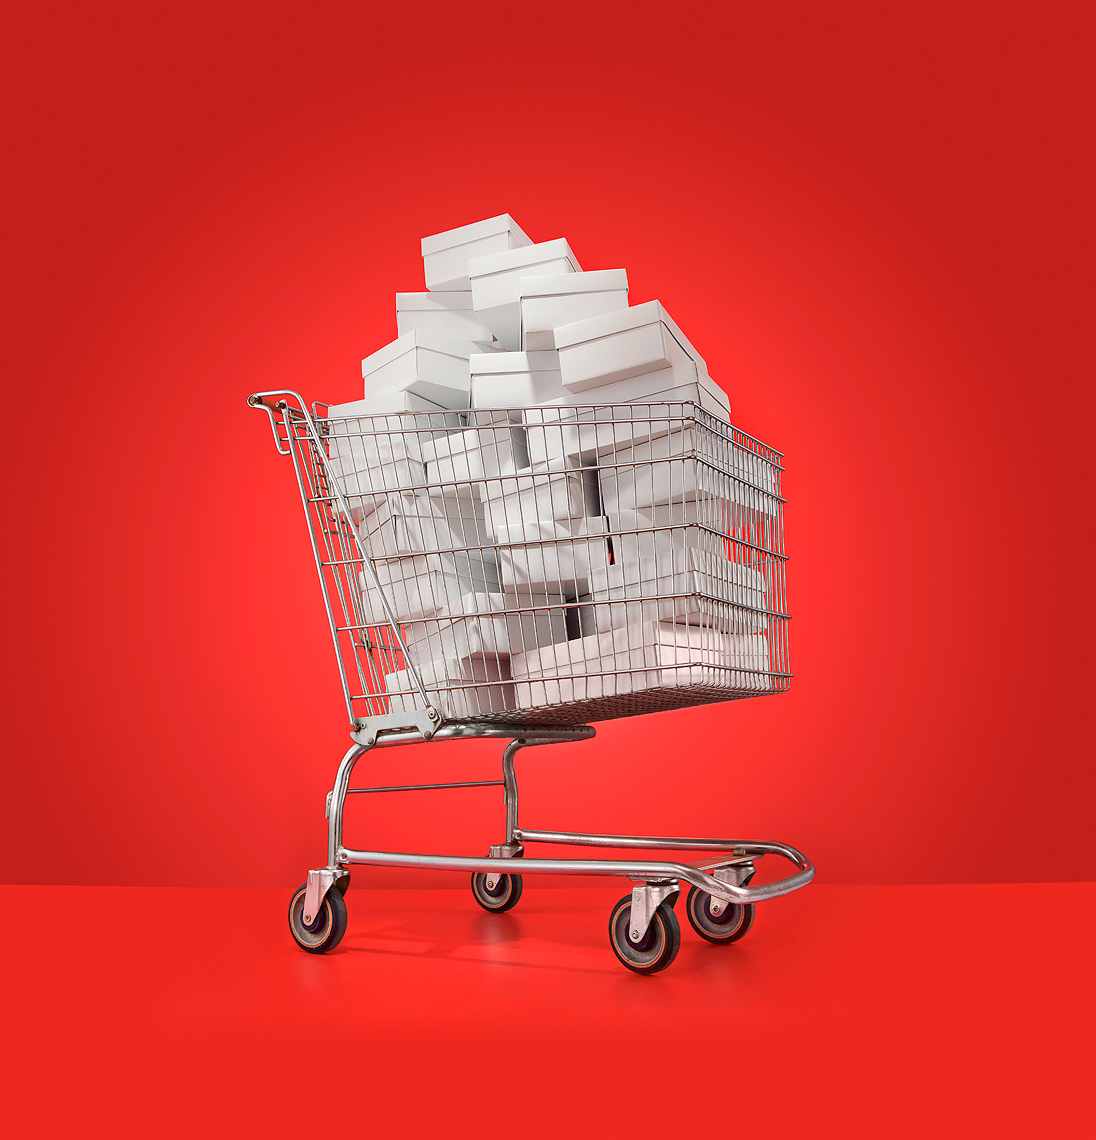 shopping_cart_red.jpg